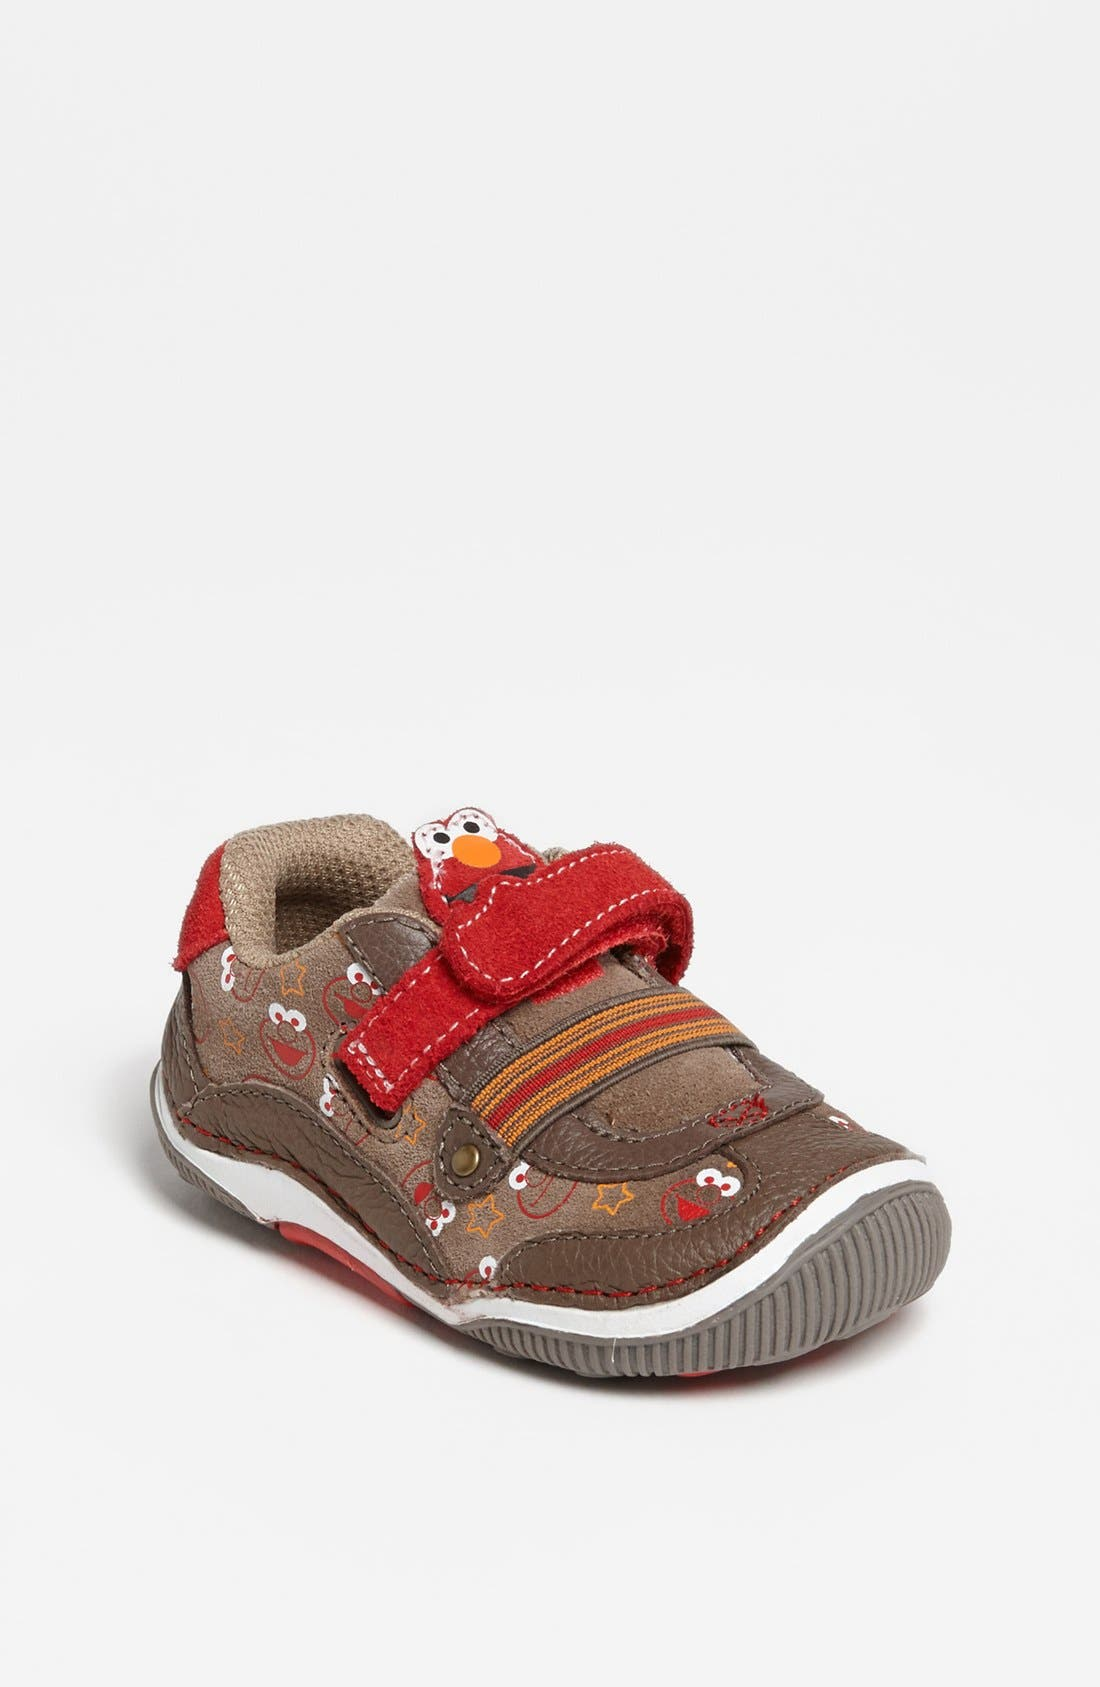 Main Image - Stride Rite ' Embracers™ - Elmo™' Sneaker (Baby, Walker & Toddler)